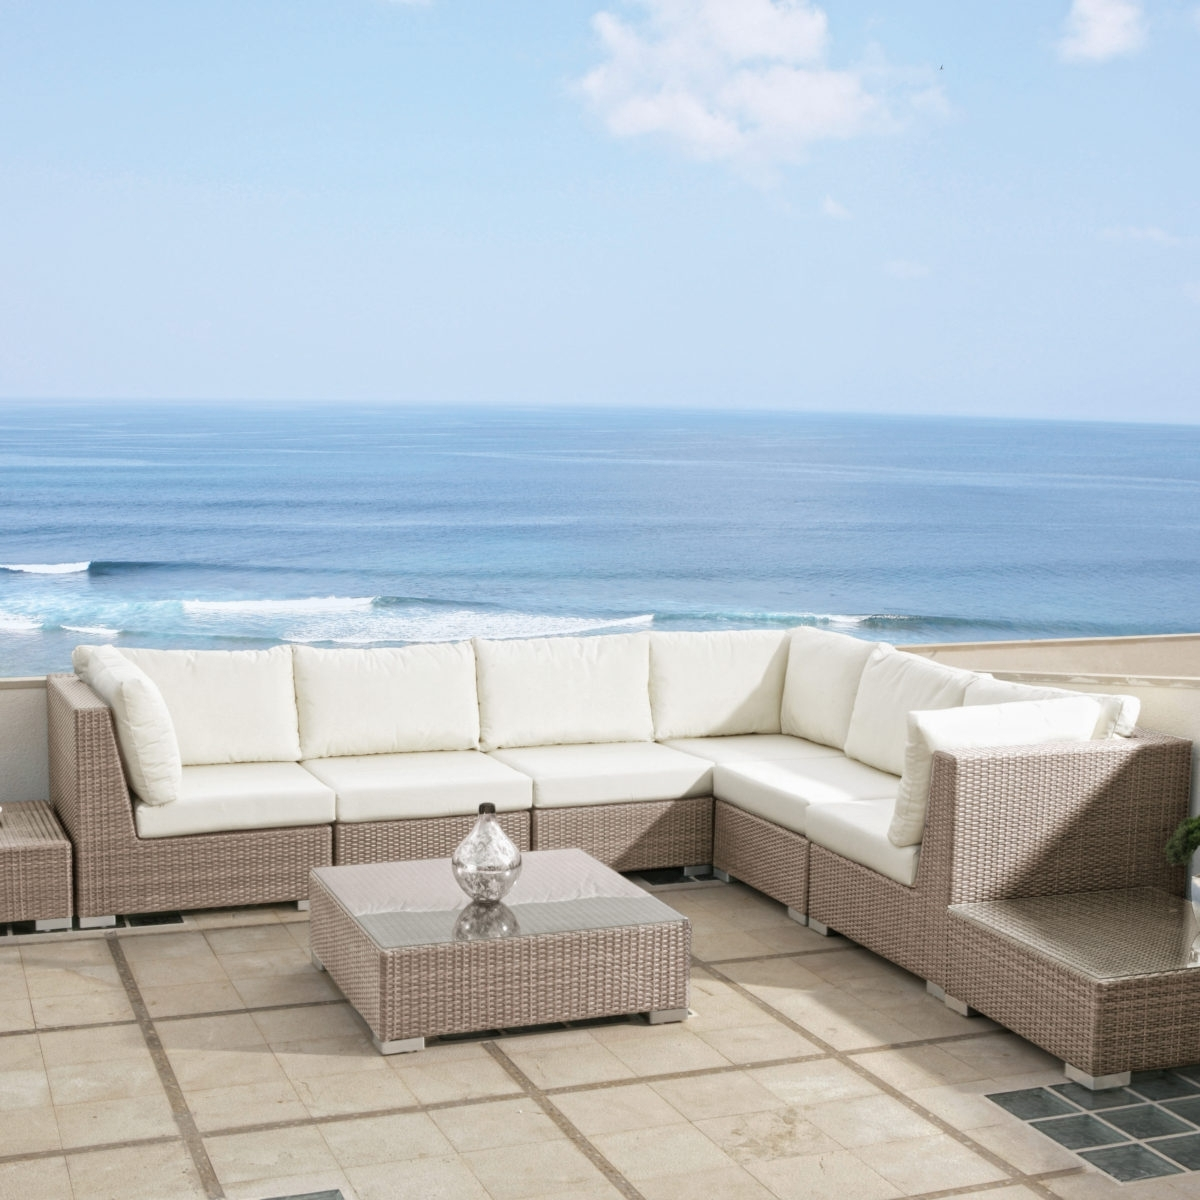 Commercial Sectional Modular Couture Outdoor Hospitality Furniture